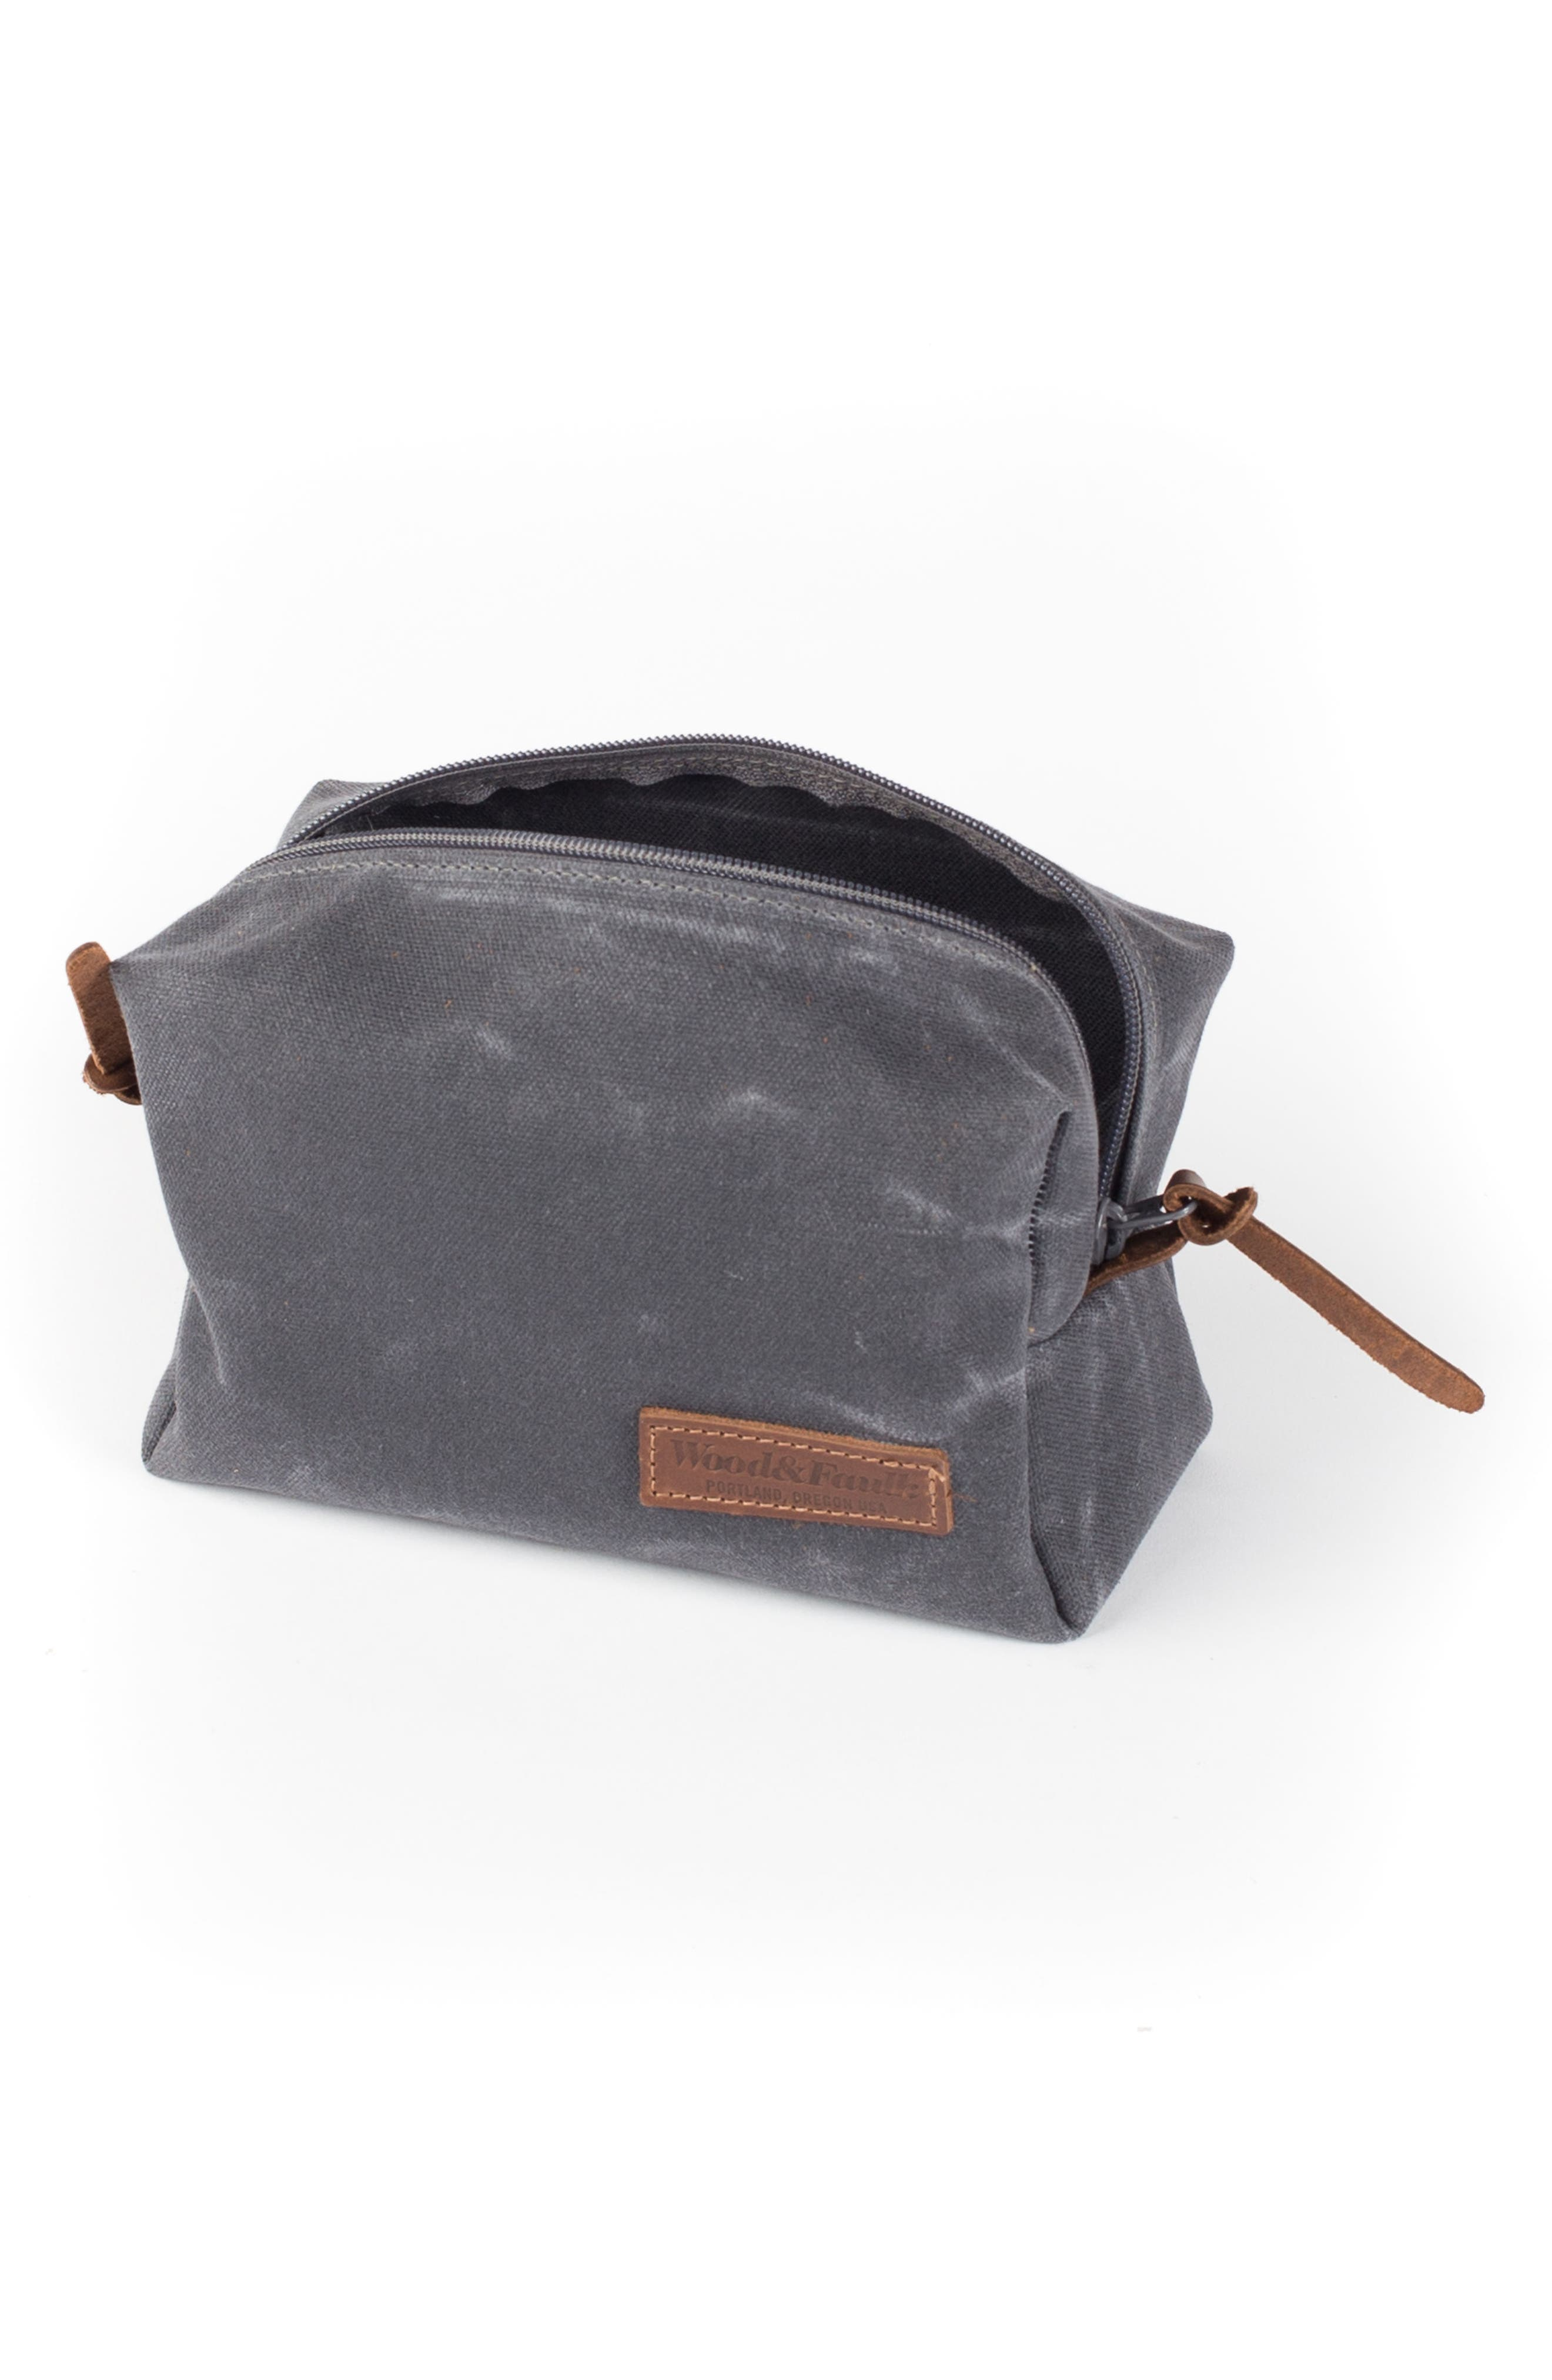 Traverse Waxed Canvas Dopp Kit,                             Alternate thumbnail 2, color,                             021